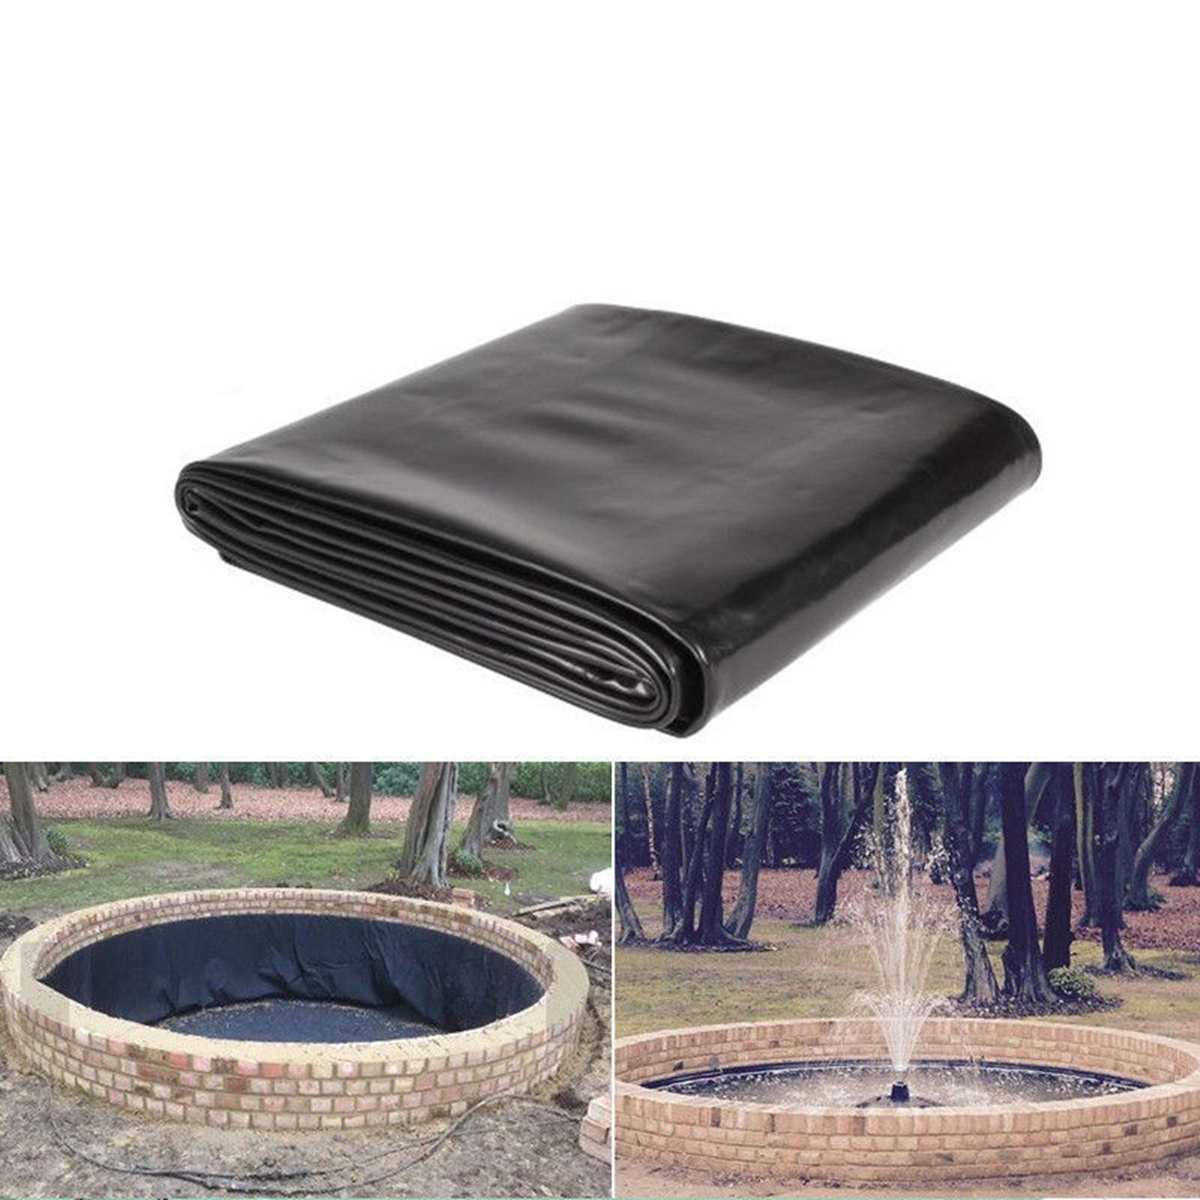 New 5x10 Ft Fish Pond Liner Garden Pools Reinforced HDPE